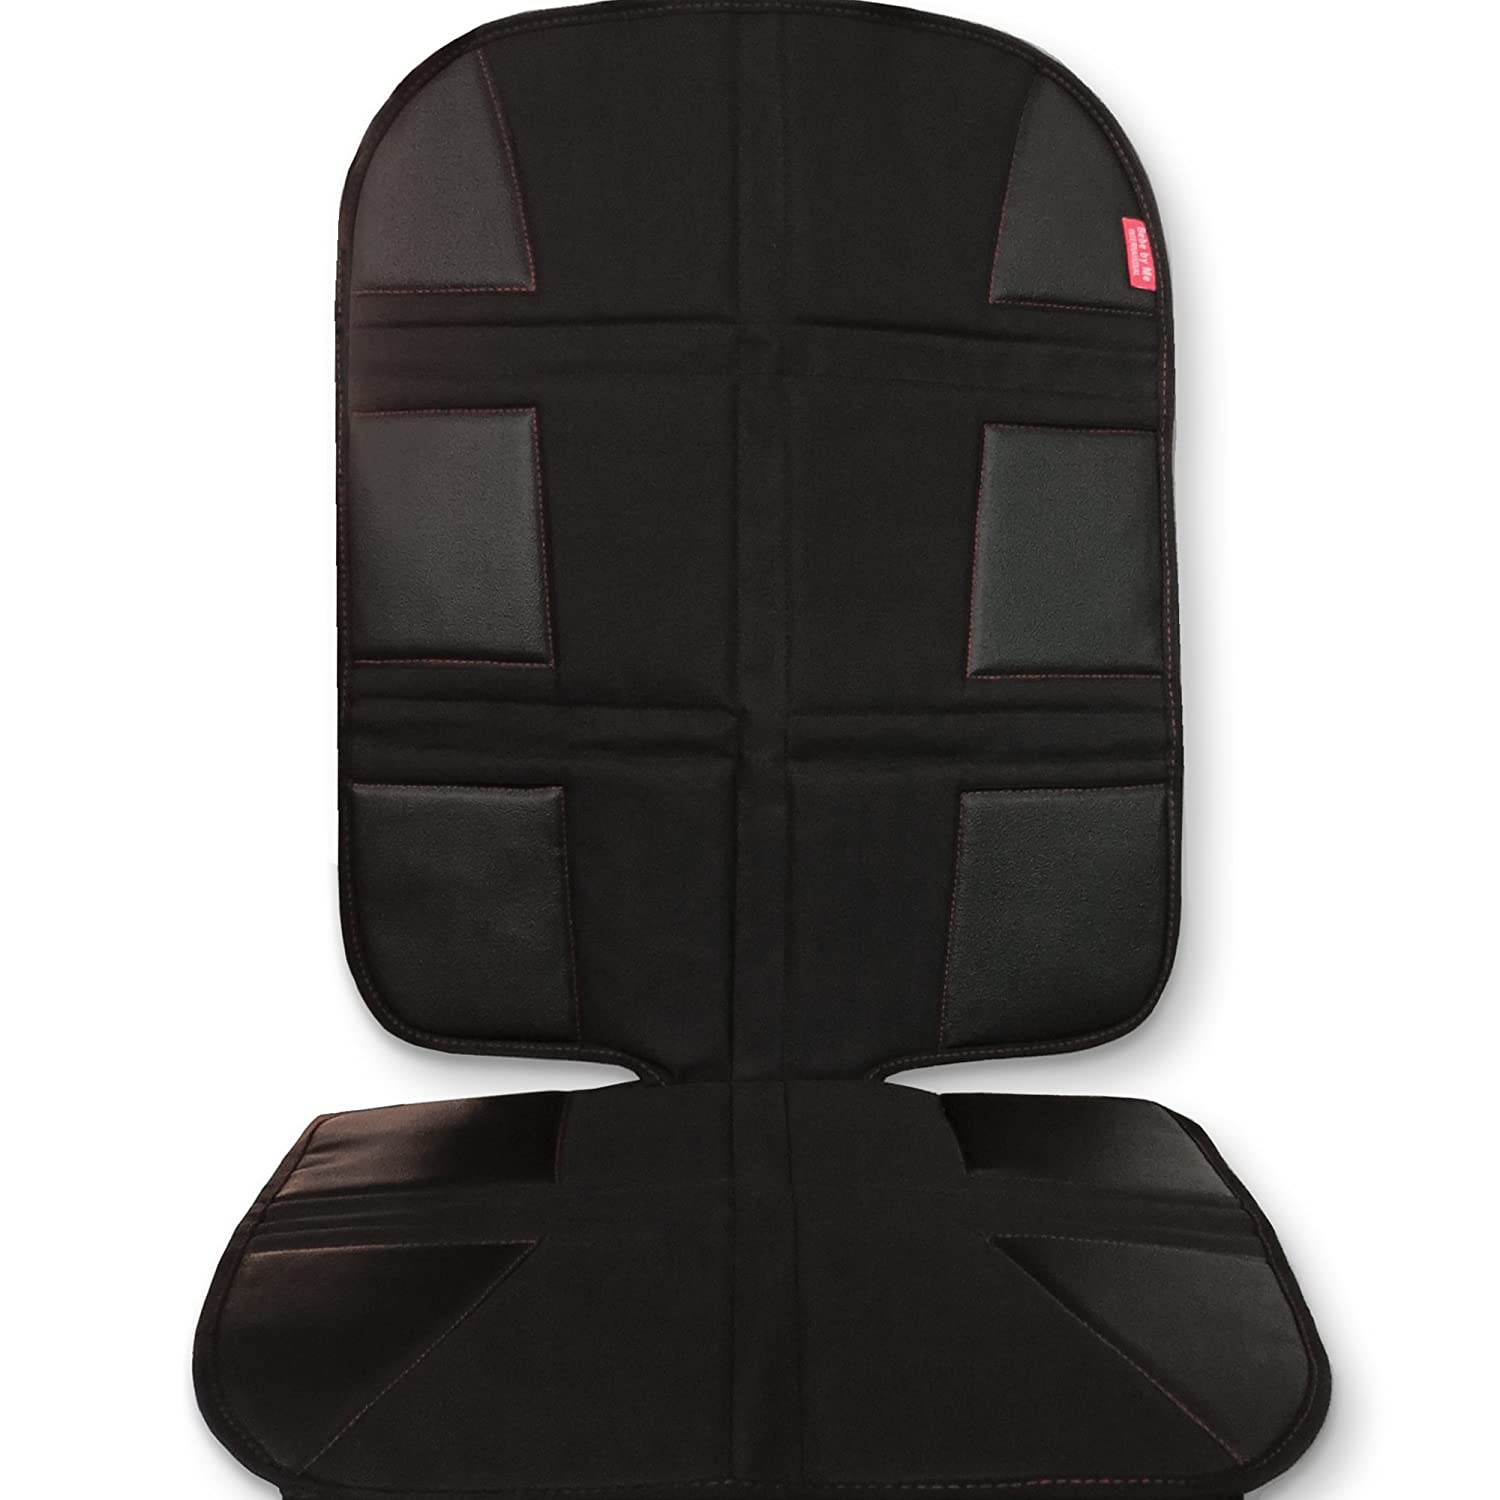 ROYAL OXFORD Luxury Car Seat Protector, Gorilla 900 Oxford, for Dark Seats Bebe by Me BBM-CSP-001